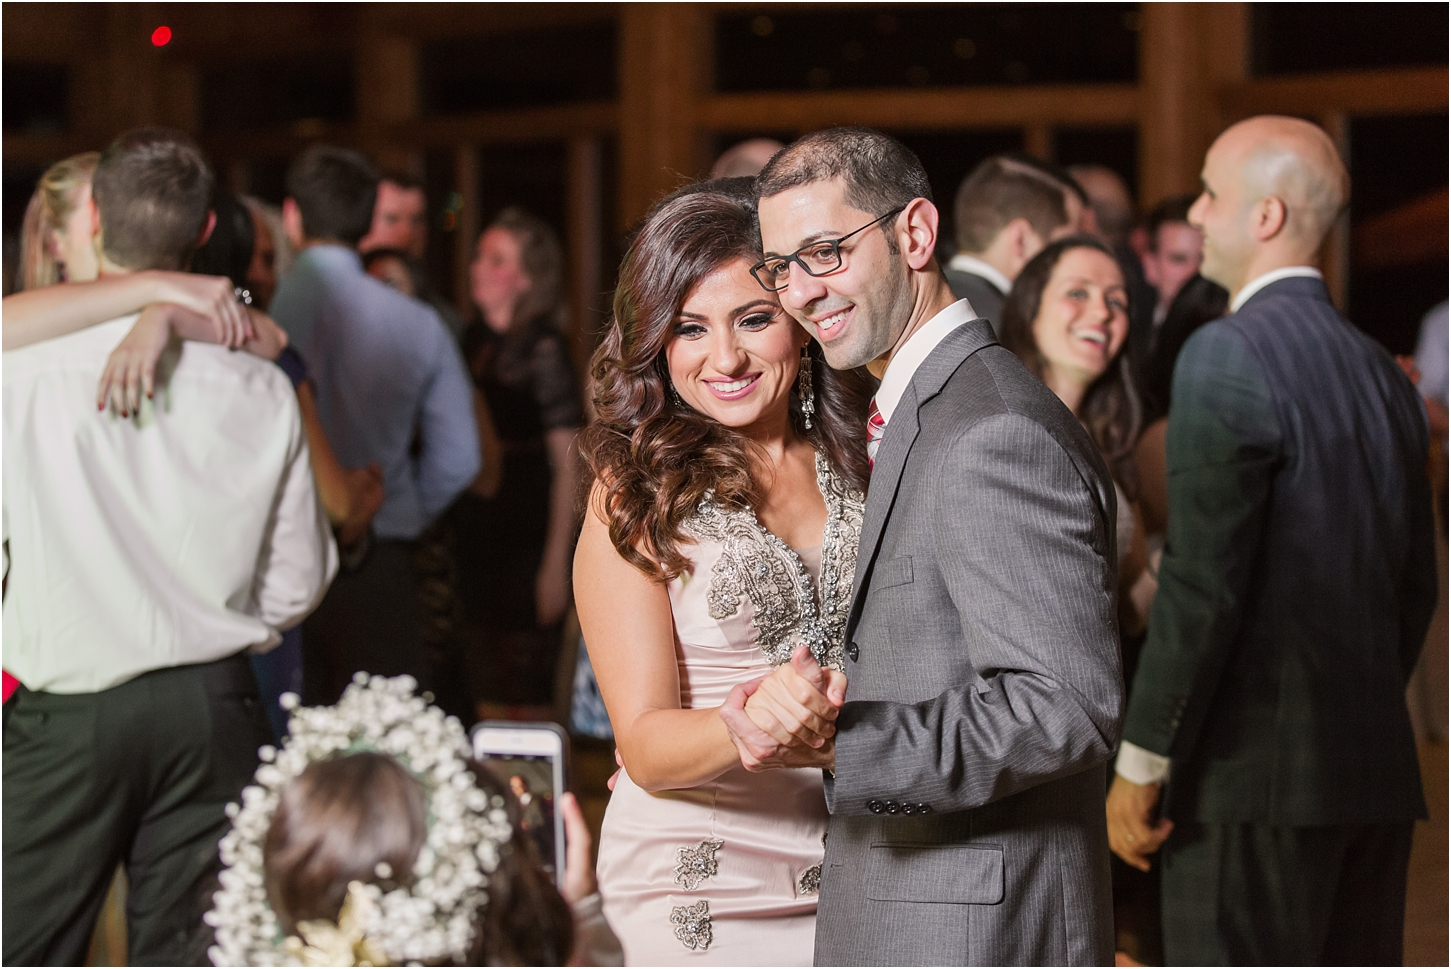 why-you-should-have-an-unplugged-wedding-by-courtney-carolyn-photography_0068.jpg